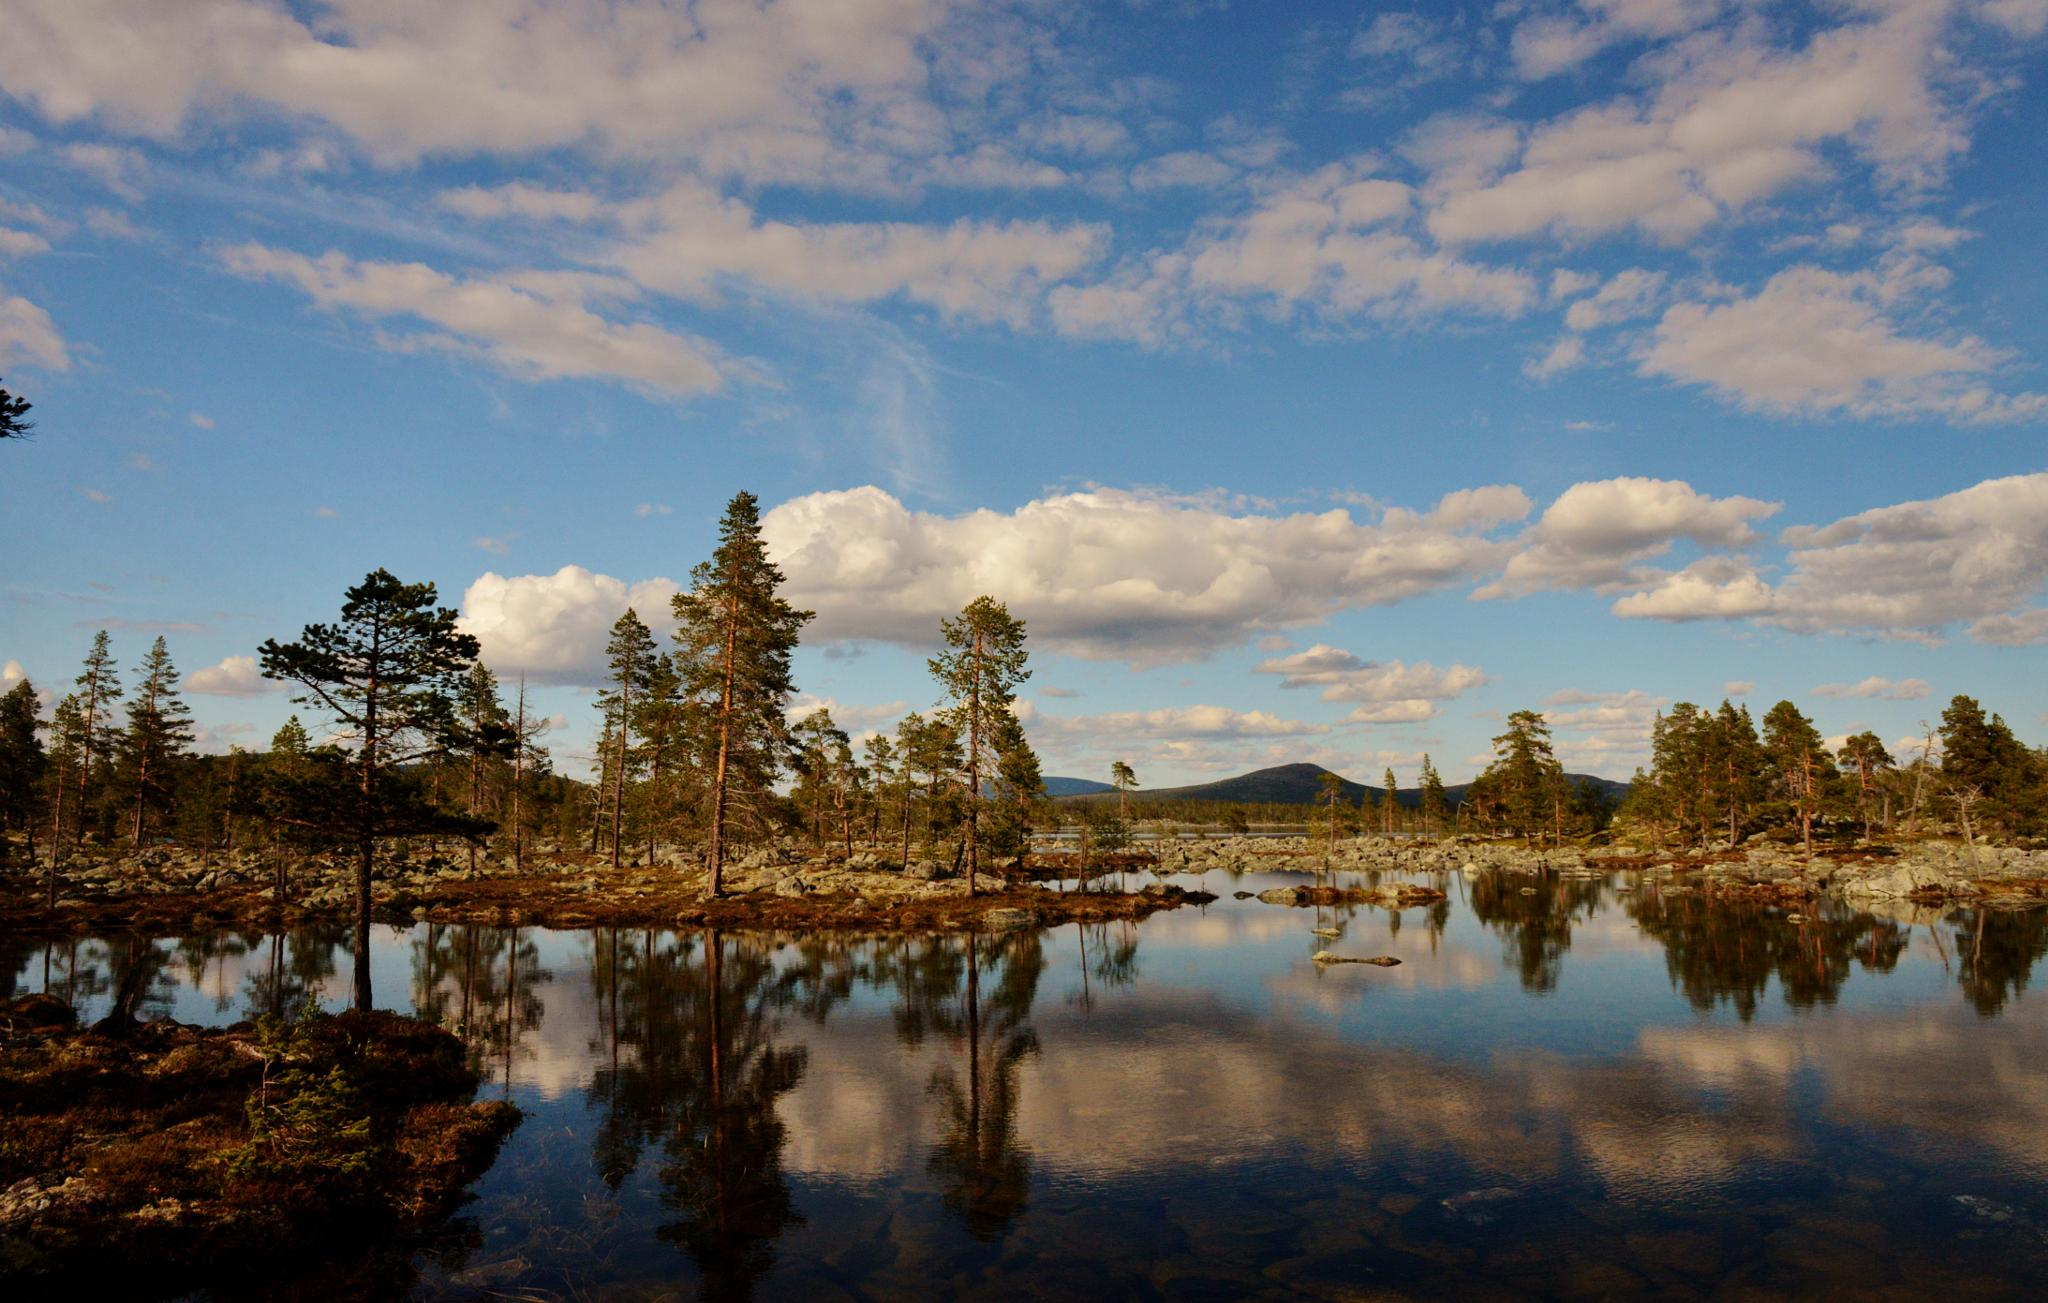 Rocks, trees and water by E Pedersen